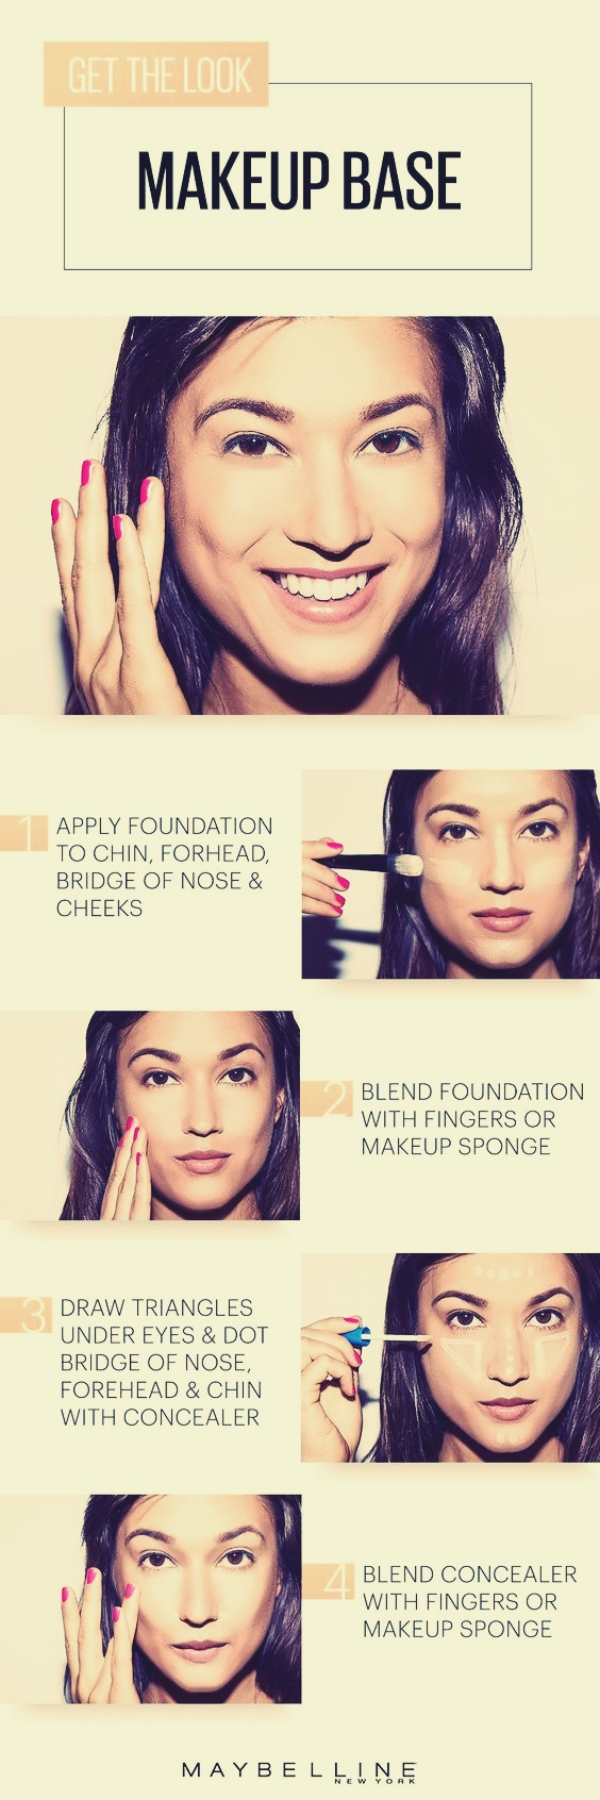 Nomakeup Look Doesn't Demand The Perfectly Flawless Skin With Zero  Blemishes Certainly, We All Know The Importance Of A Concealer! You Just  Need To Know